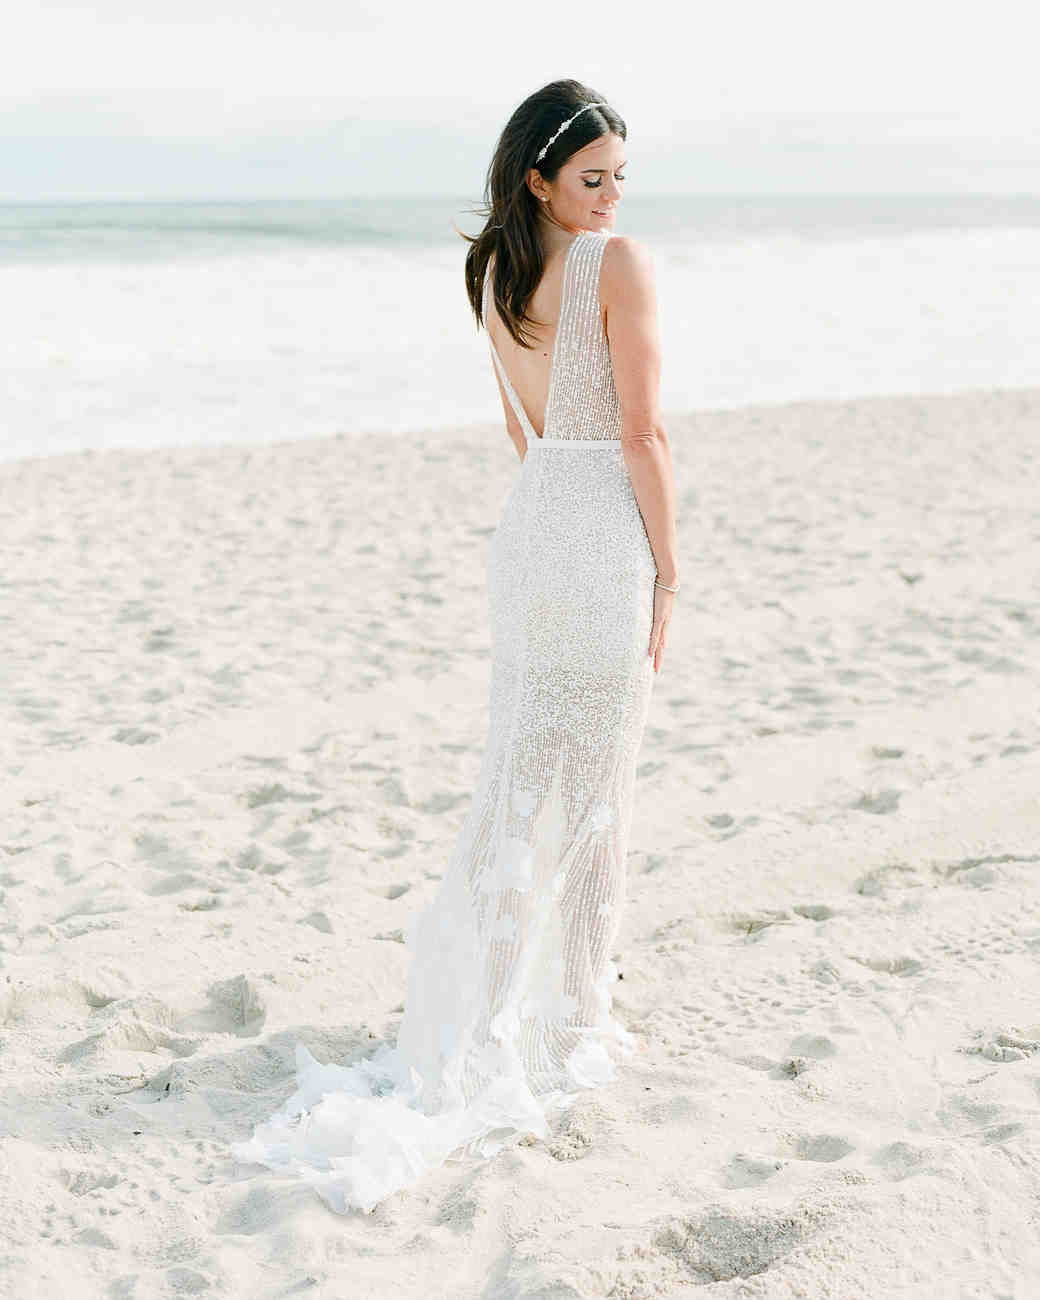 ab671901342 27 Stunning Beach Wedding Dresses